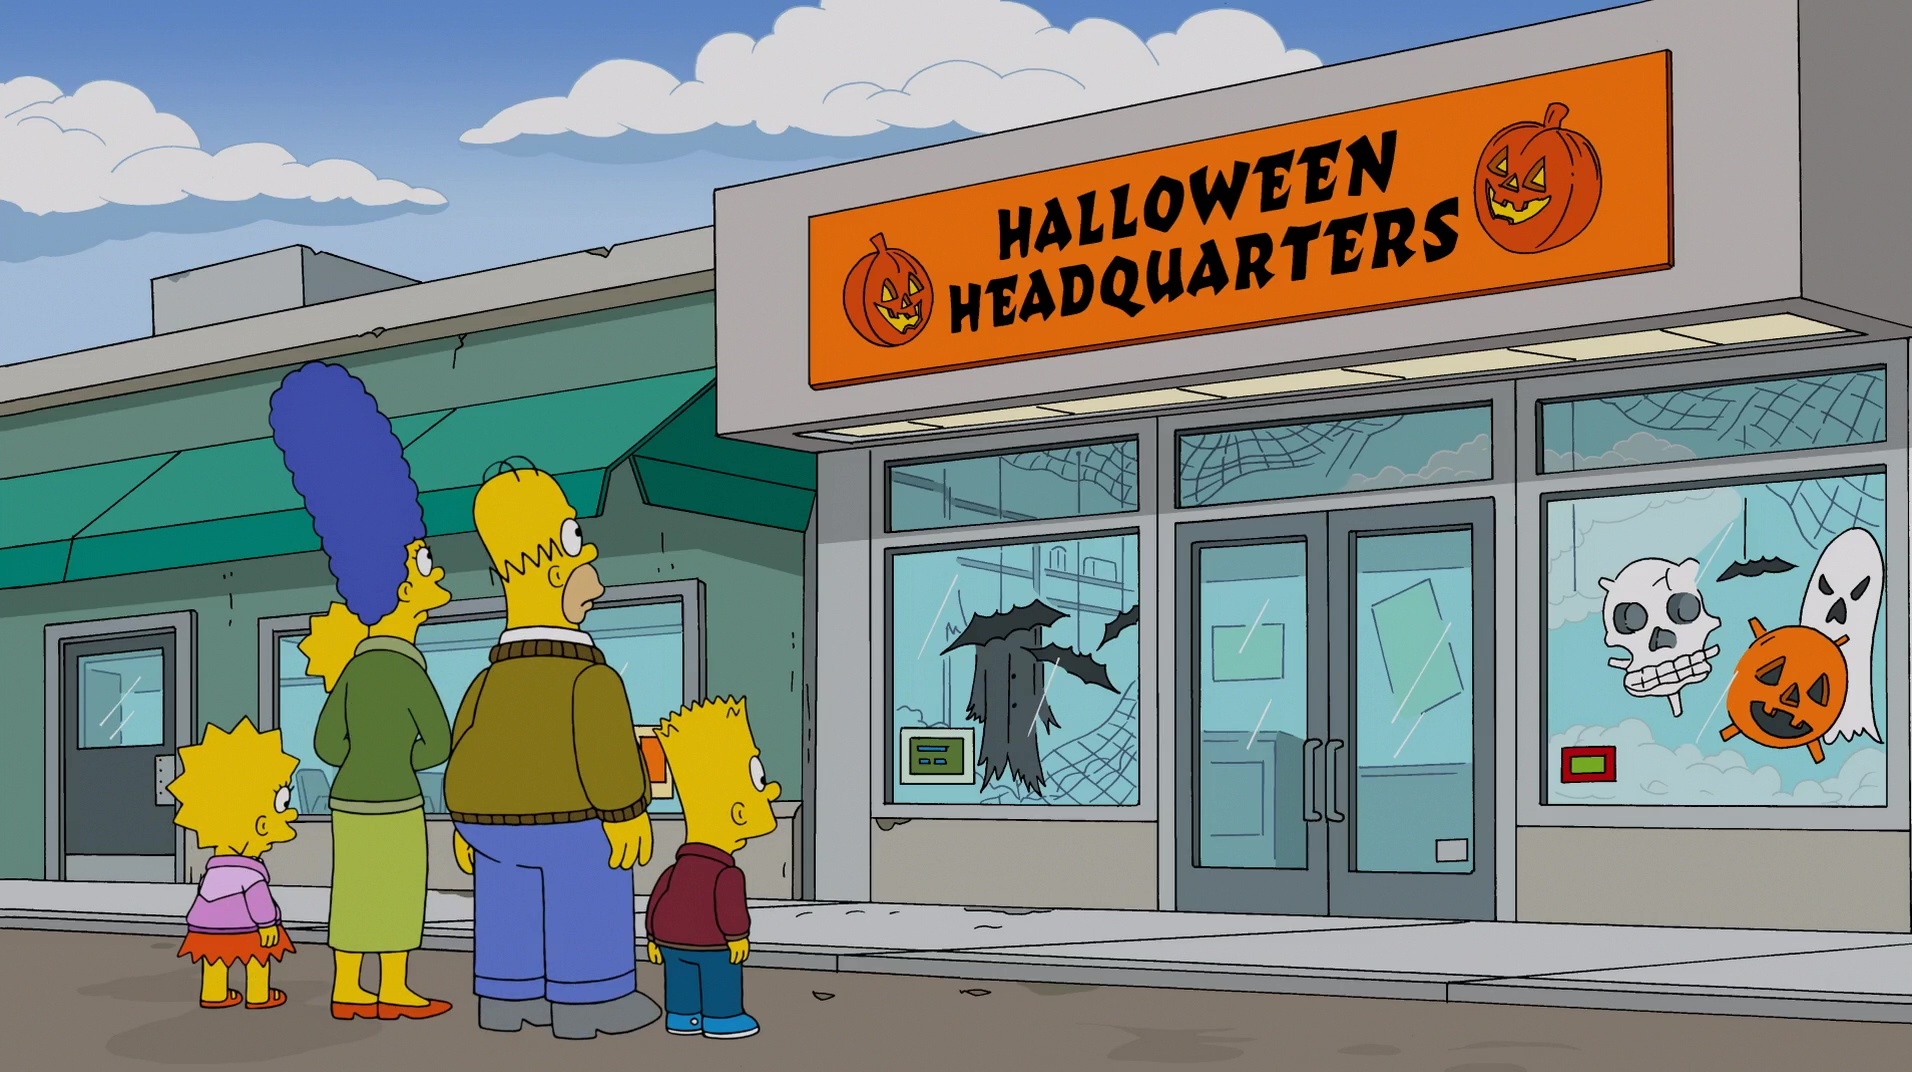 Halloween Headquarters